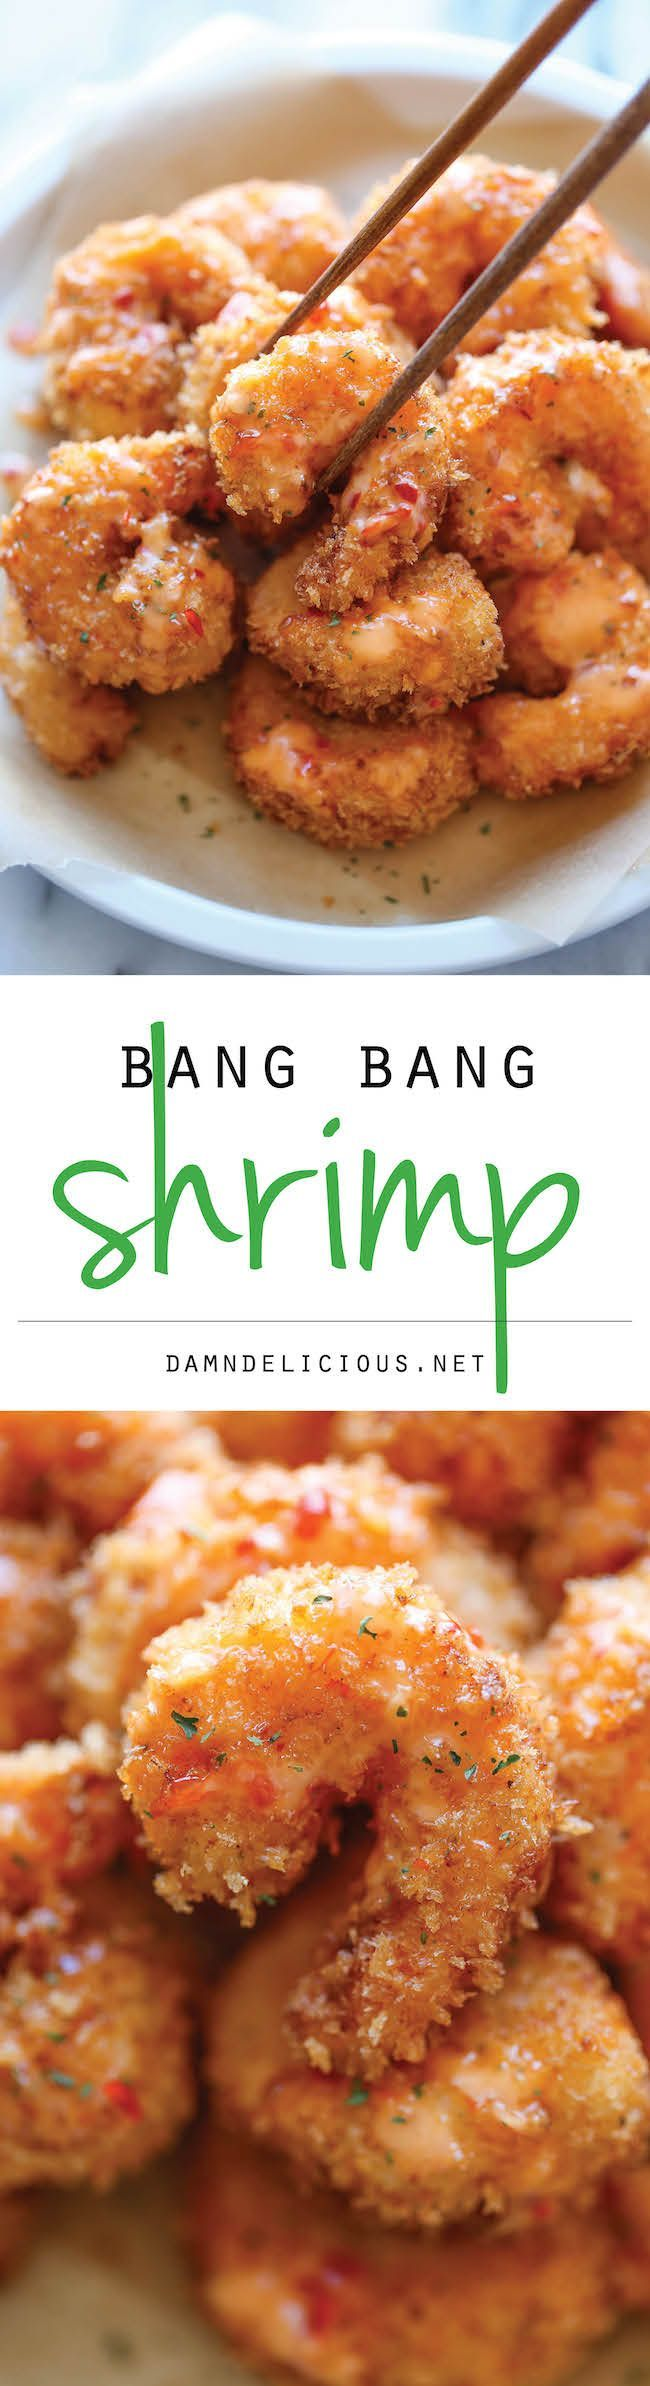 Bang Bang Shrimp - This tastes just like Cheesecake Factory's version, except it's way cheaper and so much tastier! http://chefleez.com Thai cooking school class in Bangkok